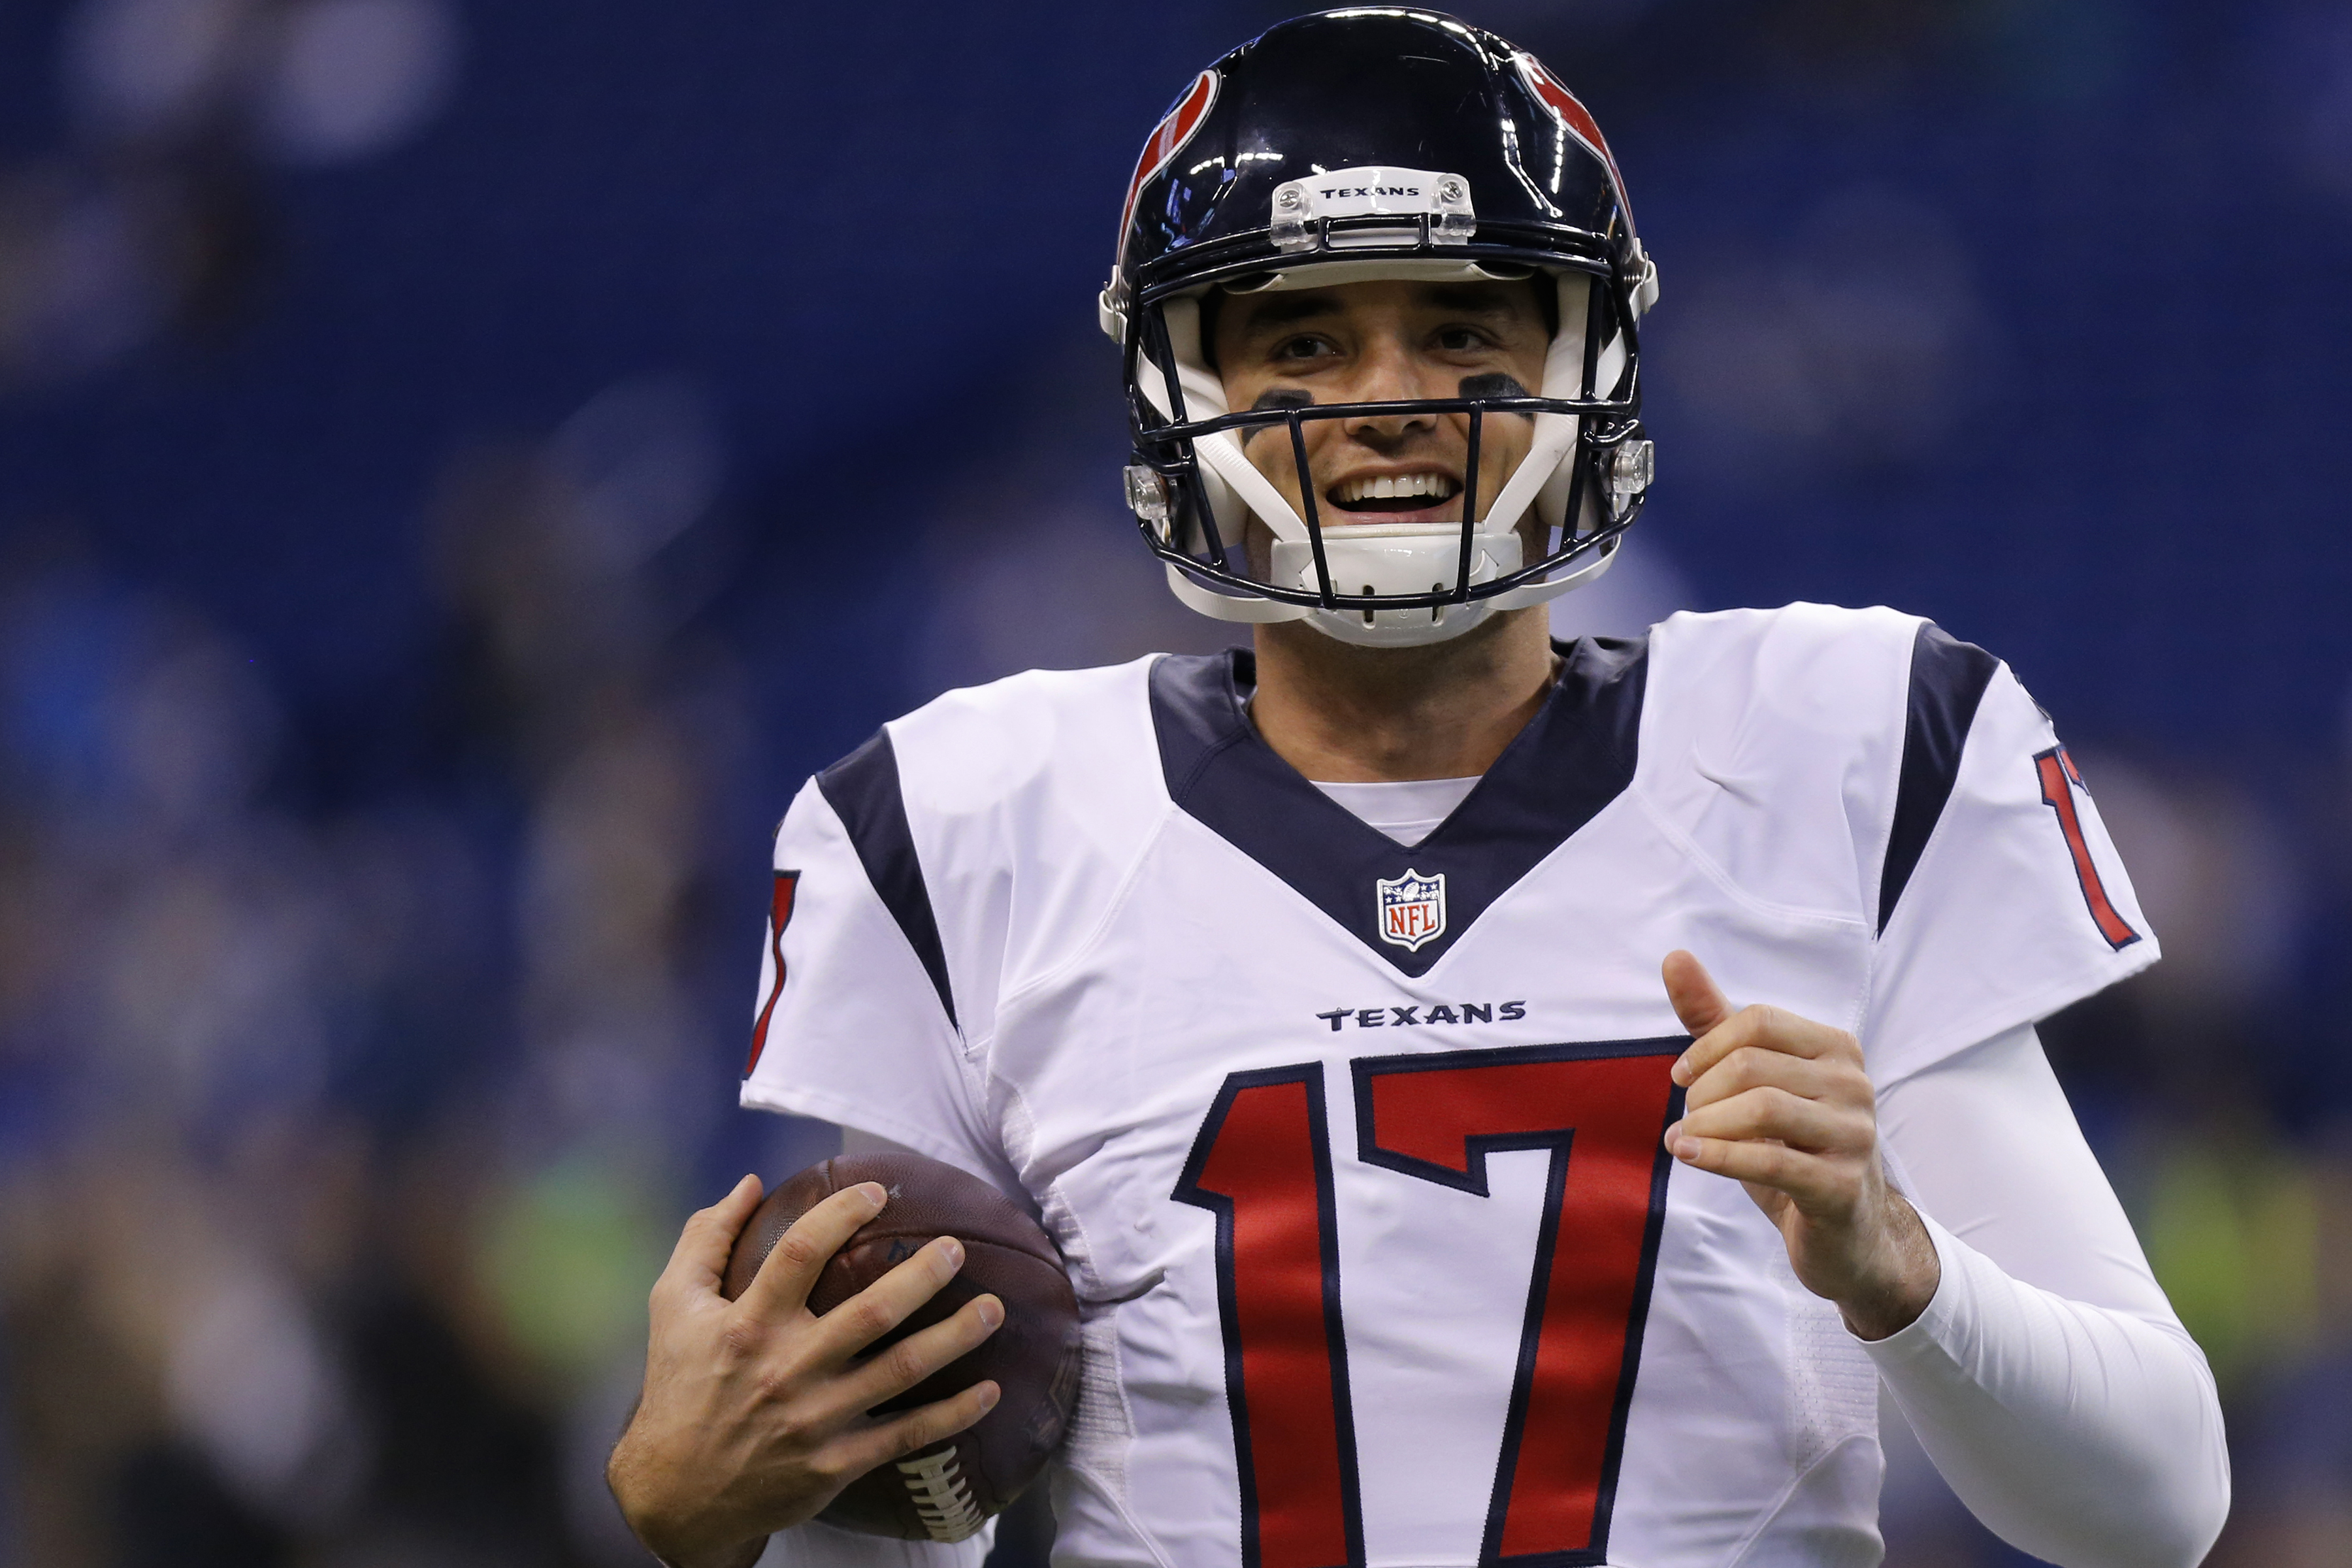 Farewell to Brock Osweiler, and his inspirational $1.38 million per start career